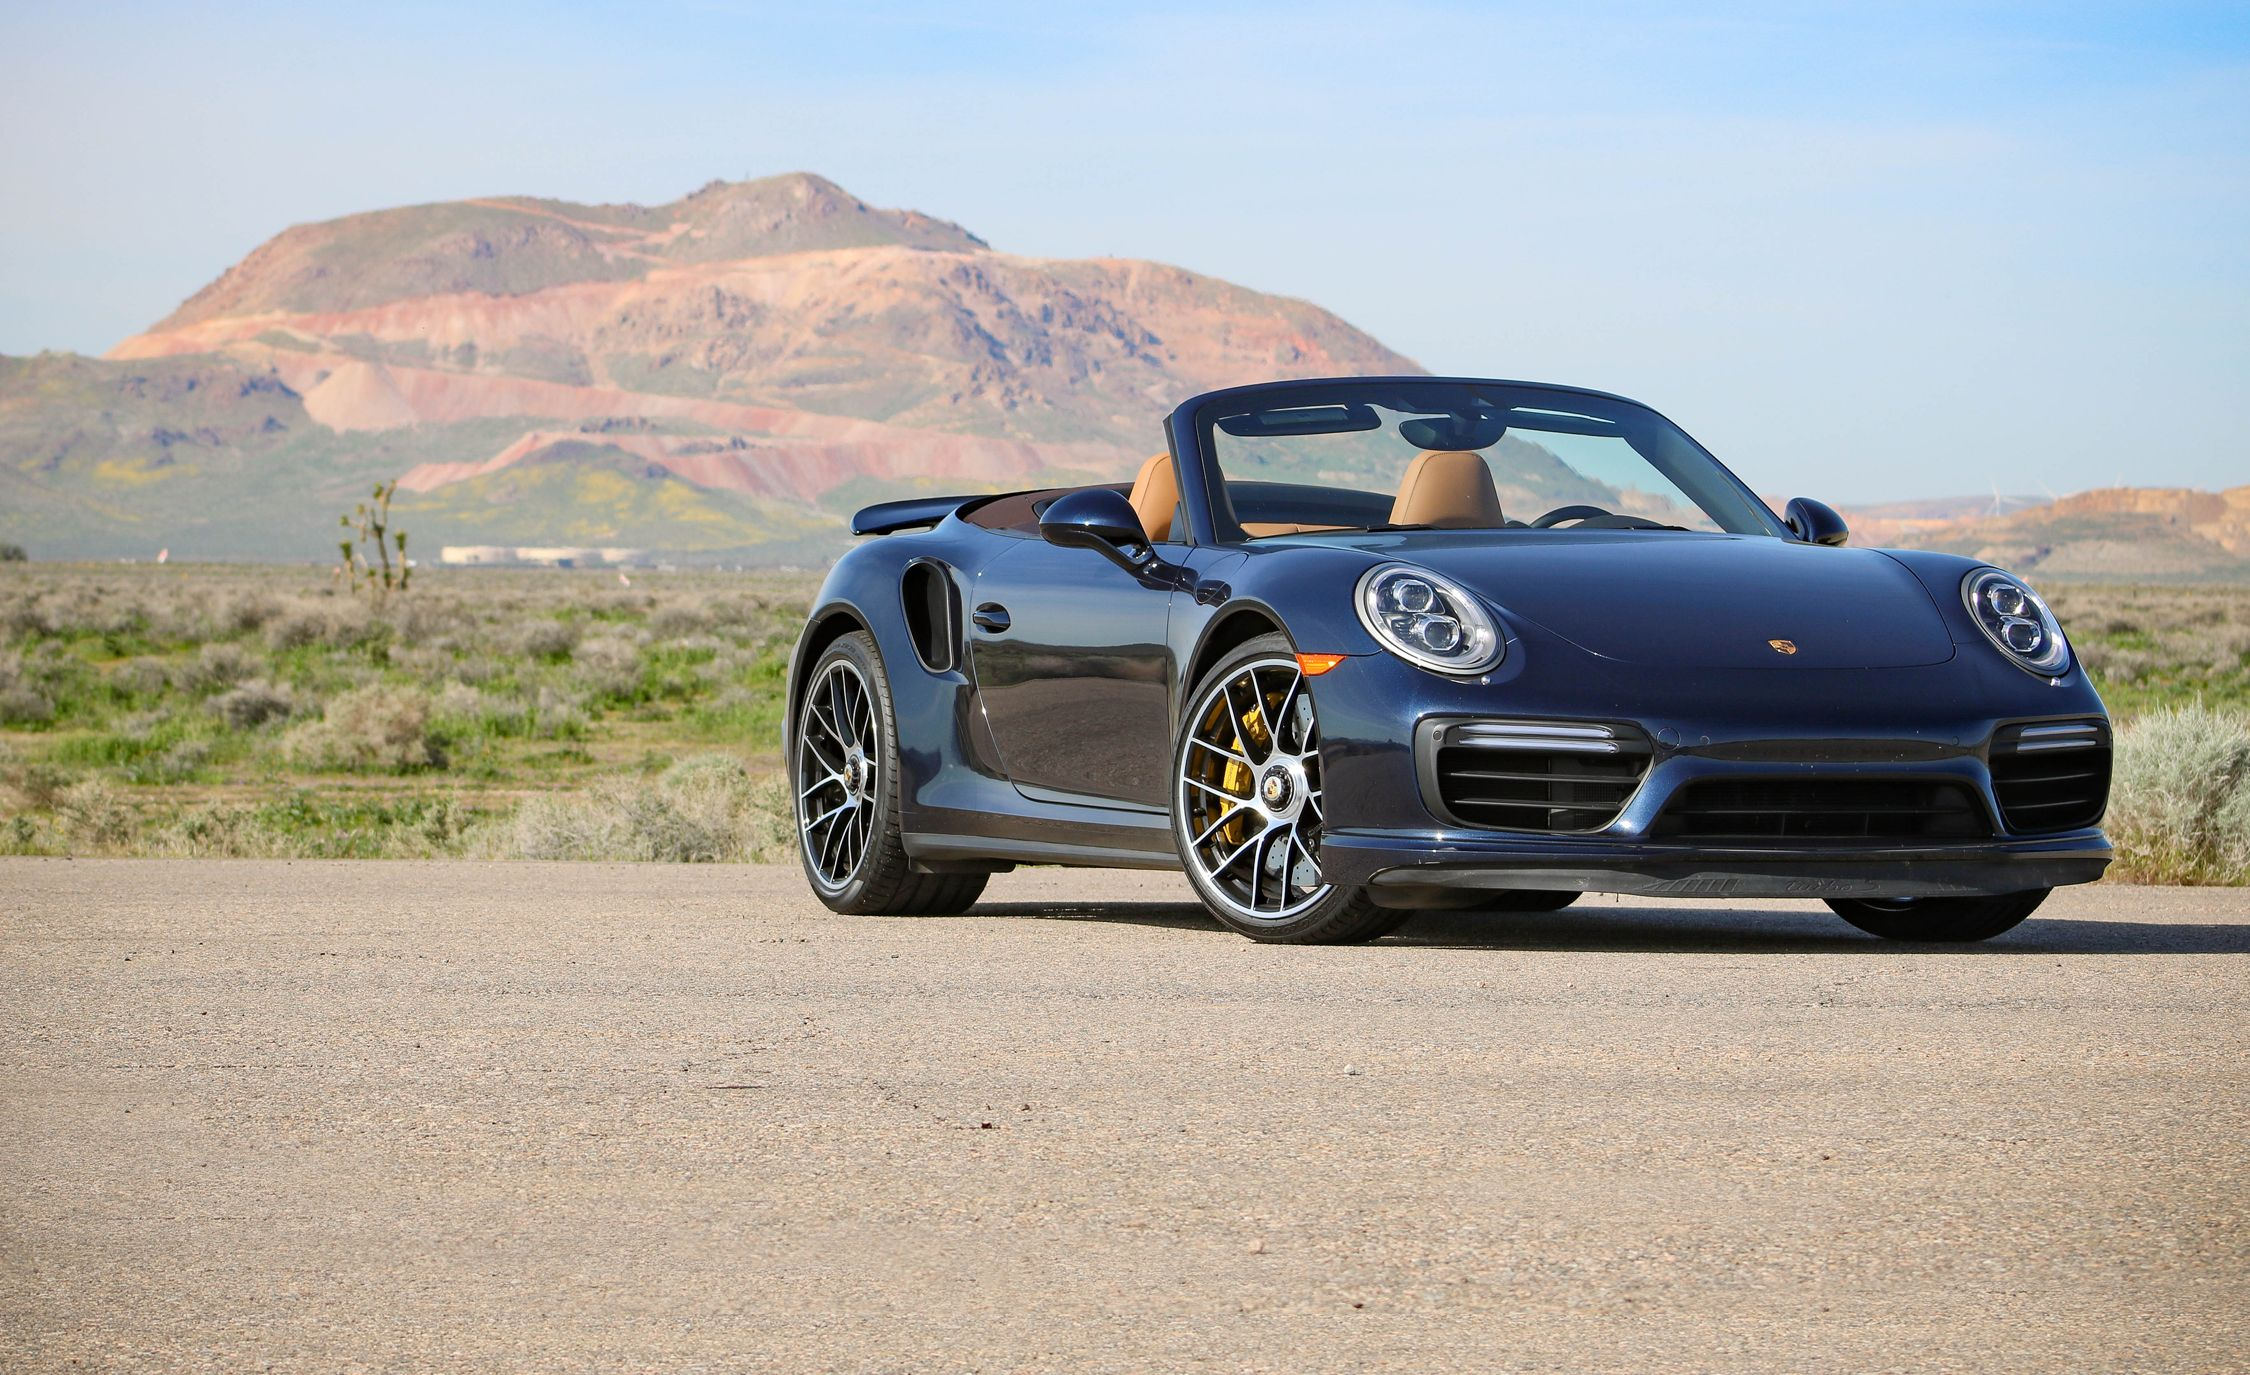 2017-porsche-911-turbo-s-cabriolet-test-review-car-and-driver-photo-682508-s-original Mesmerizing Porsche 911 Turbo Vs Z06 Cars Trend